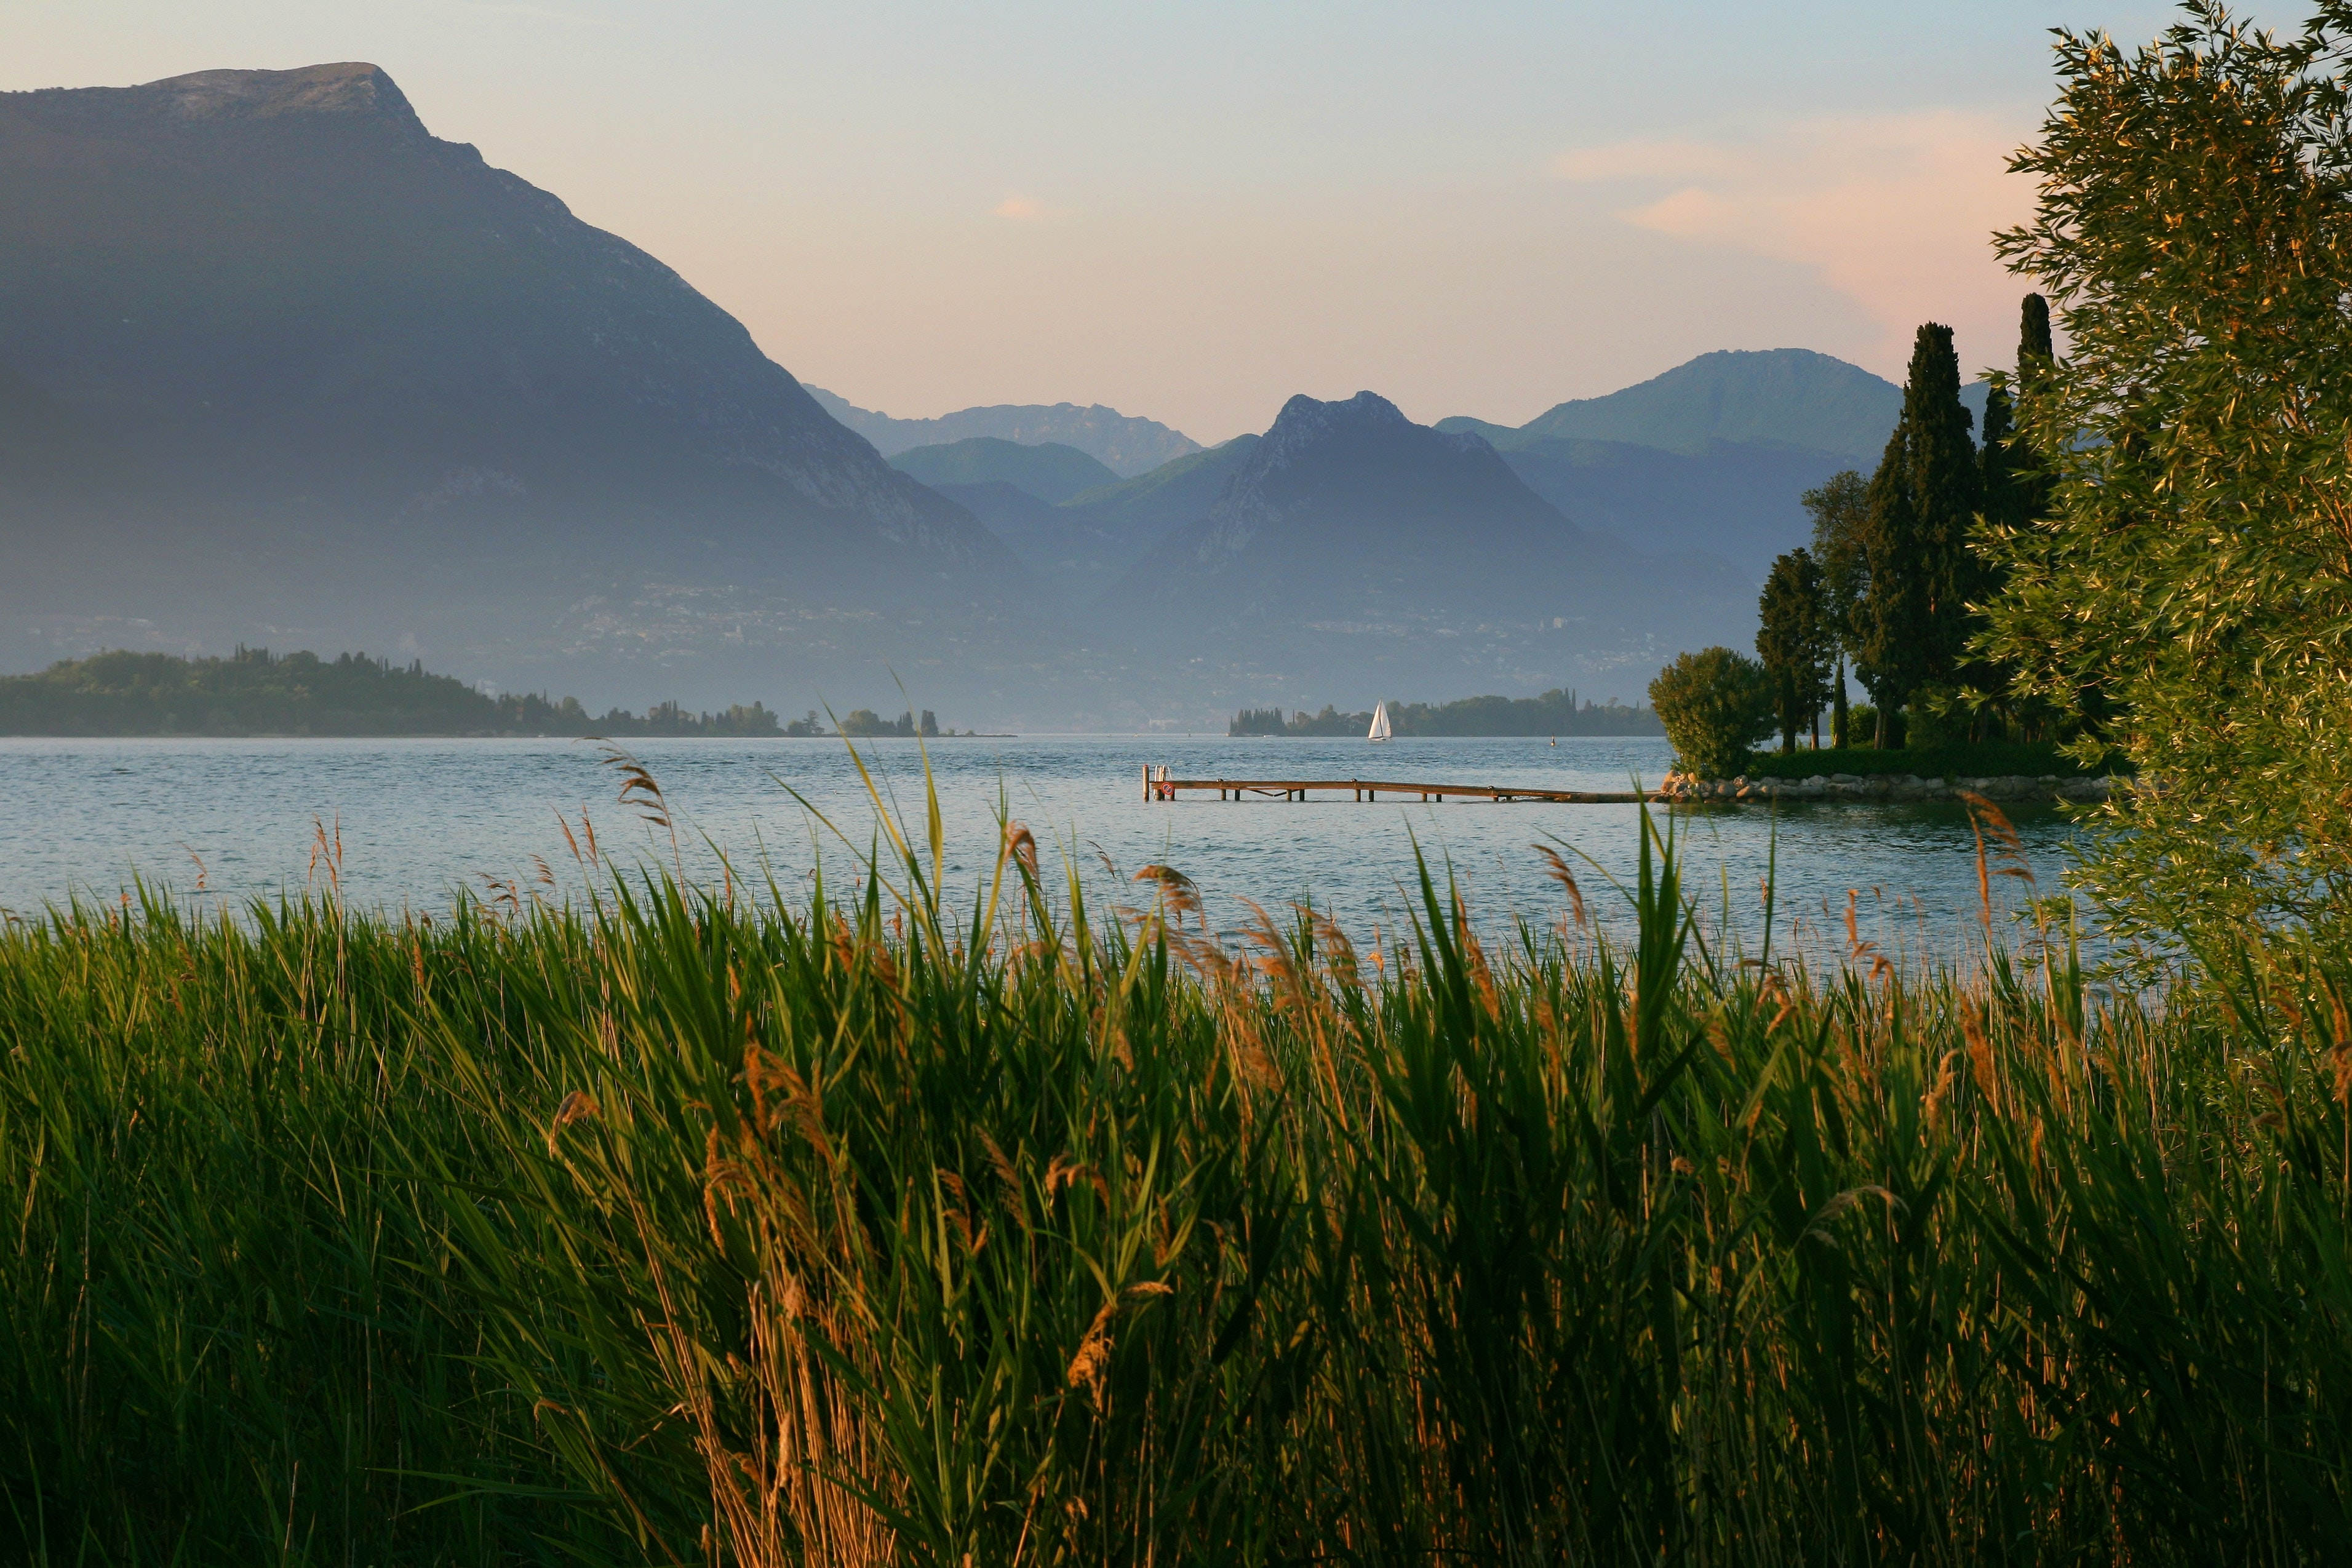 Tall grass near a mountain lake with a yacht and a pier in the distance